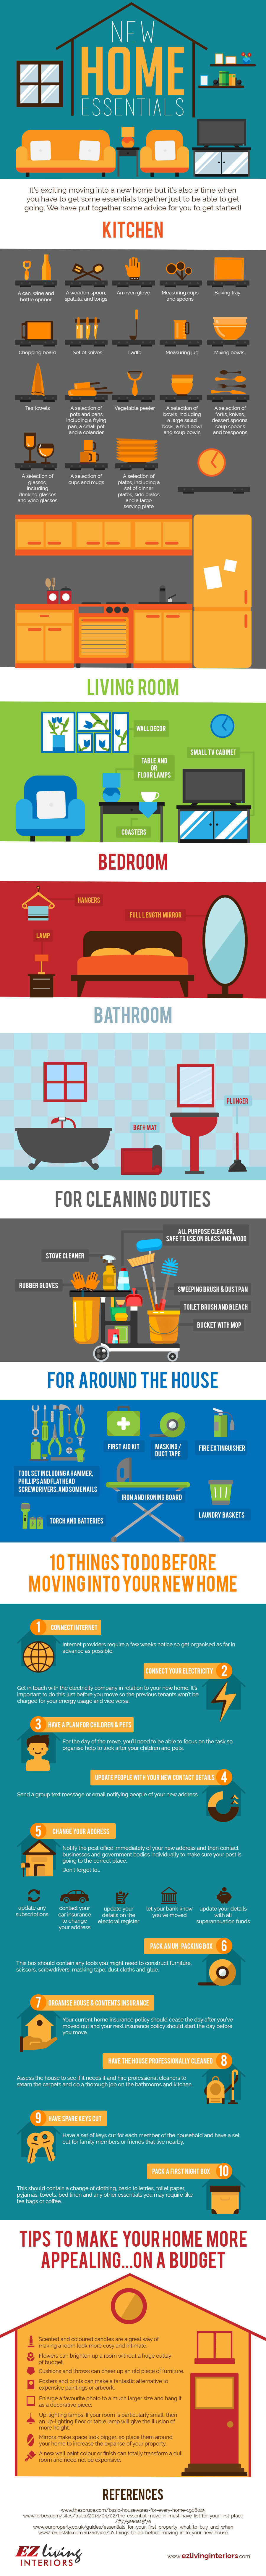 New Home Essentials: The Must-Have List - Infographic